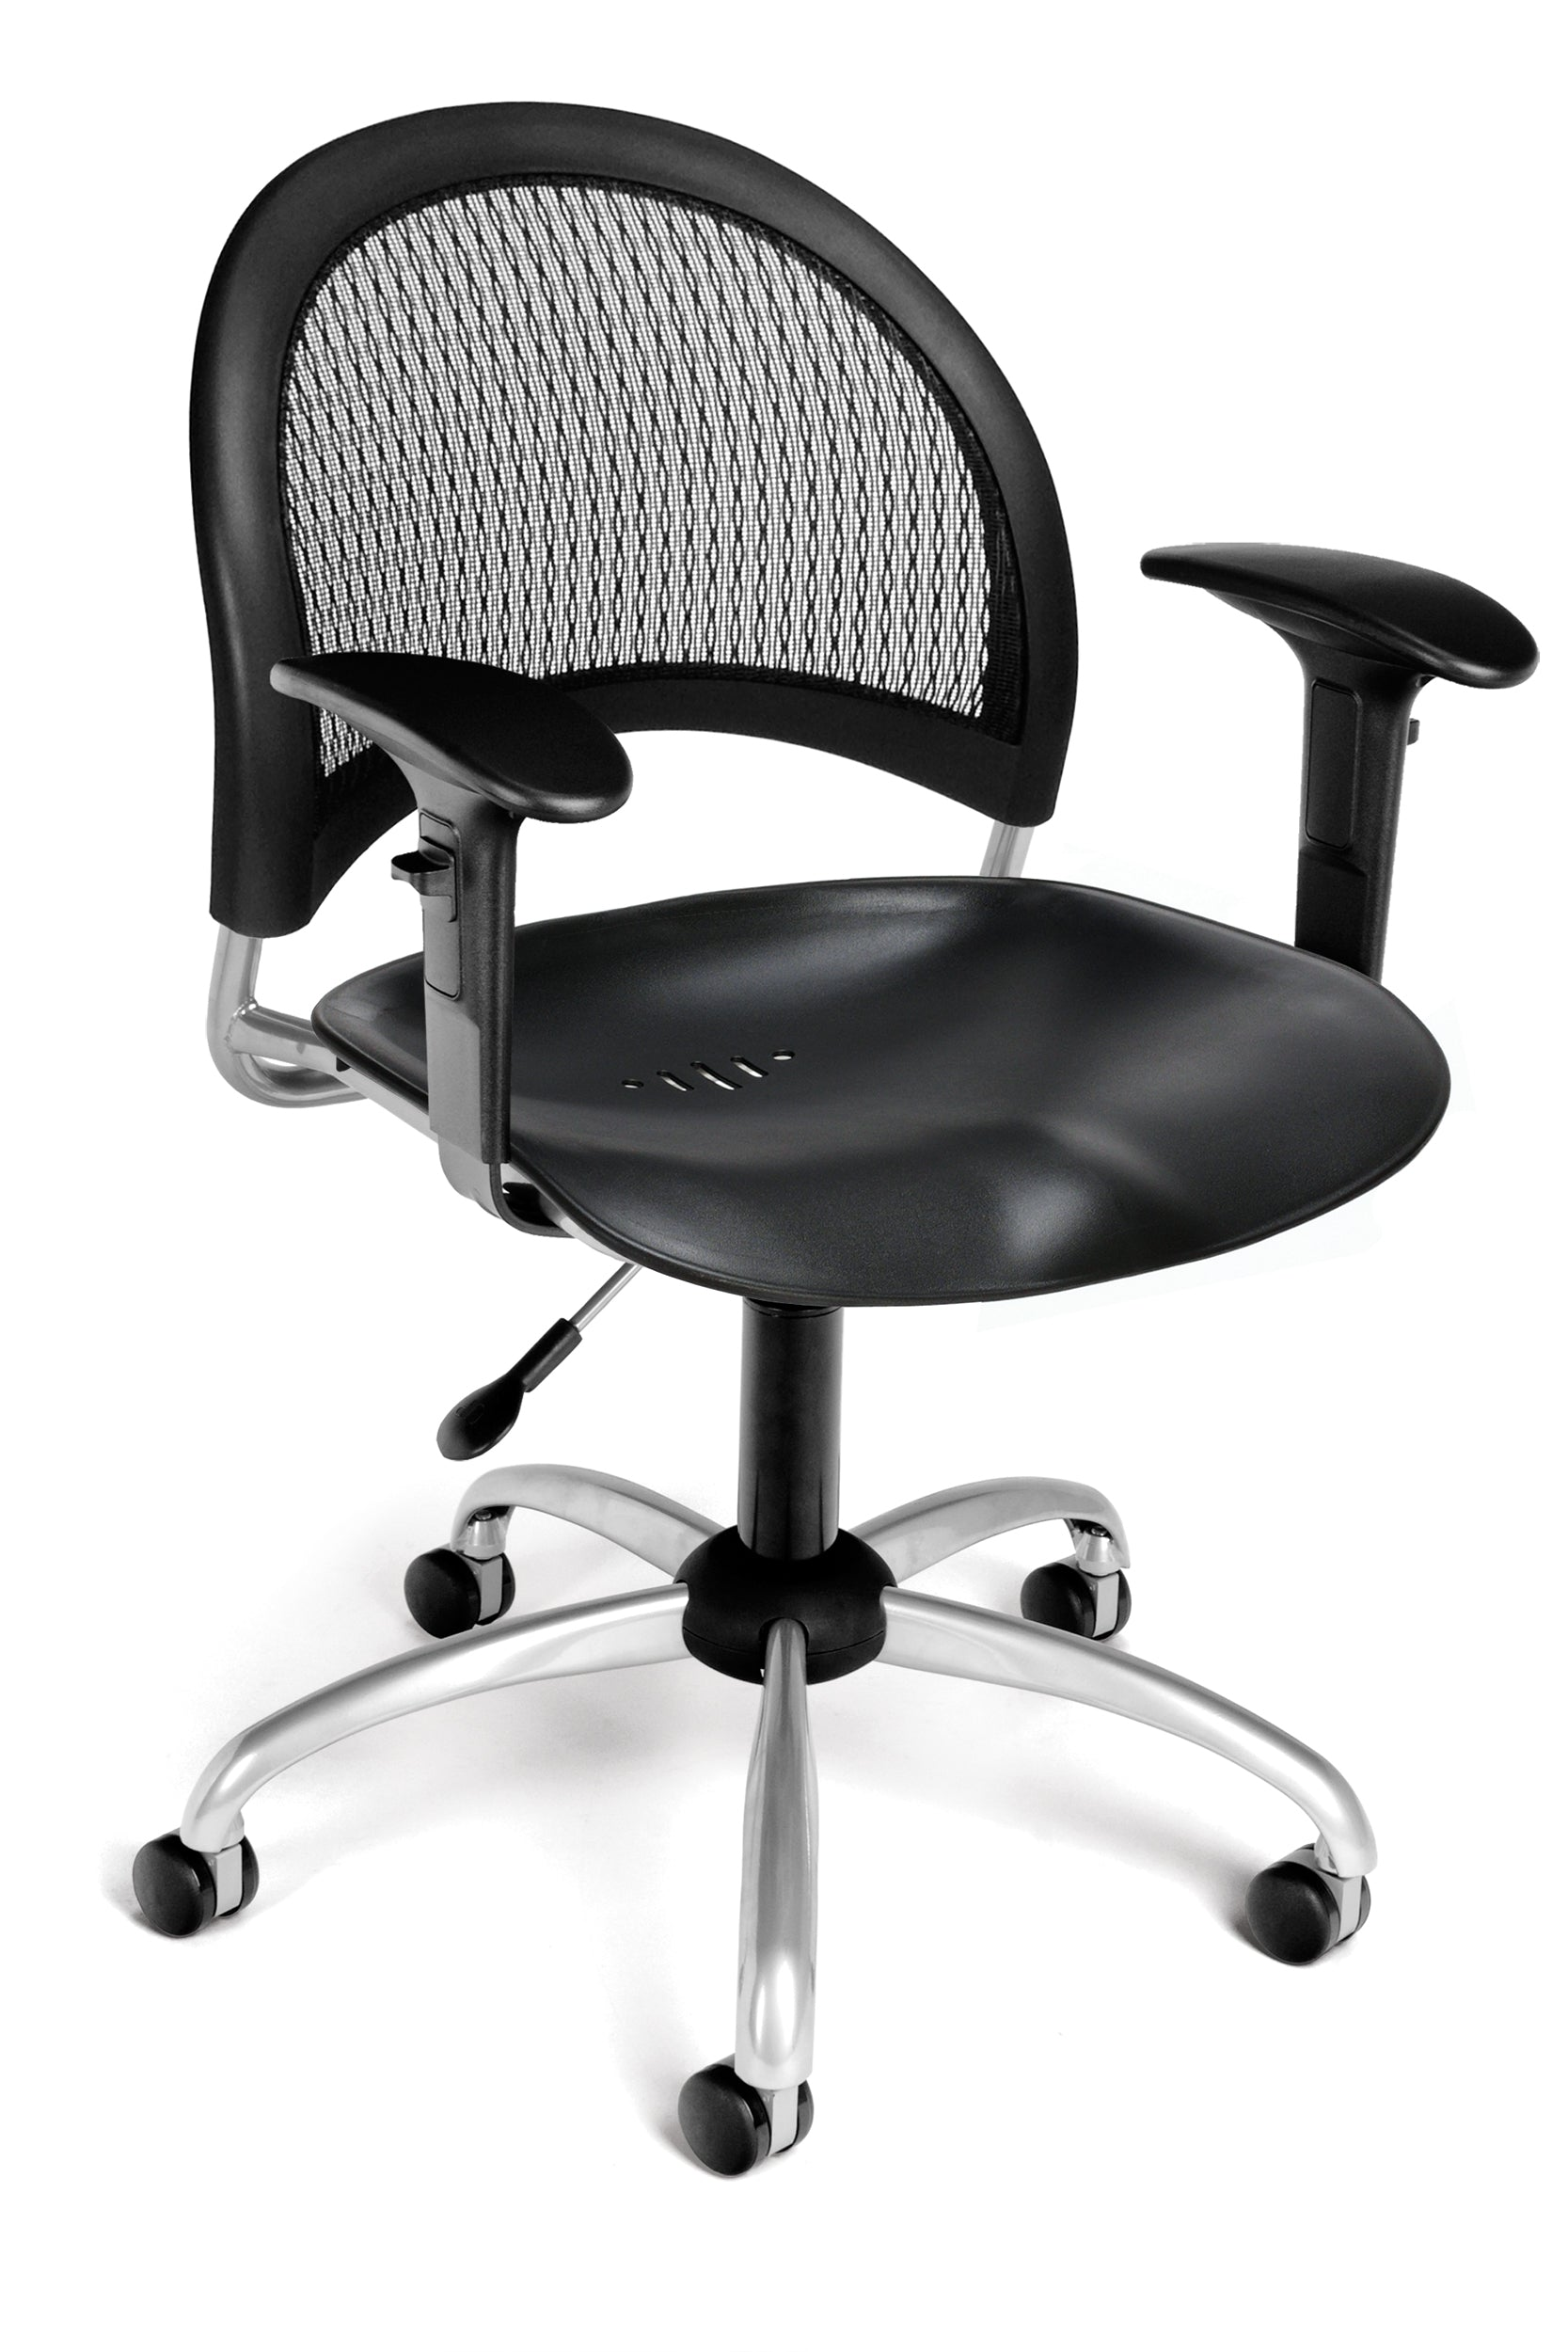 Ofminc Model 336-P-AA3 Moon Series Plastic Swivel Chair with Arms